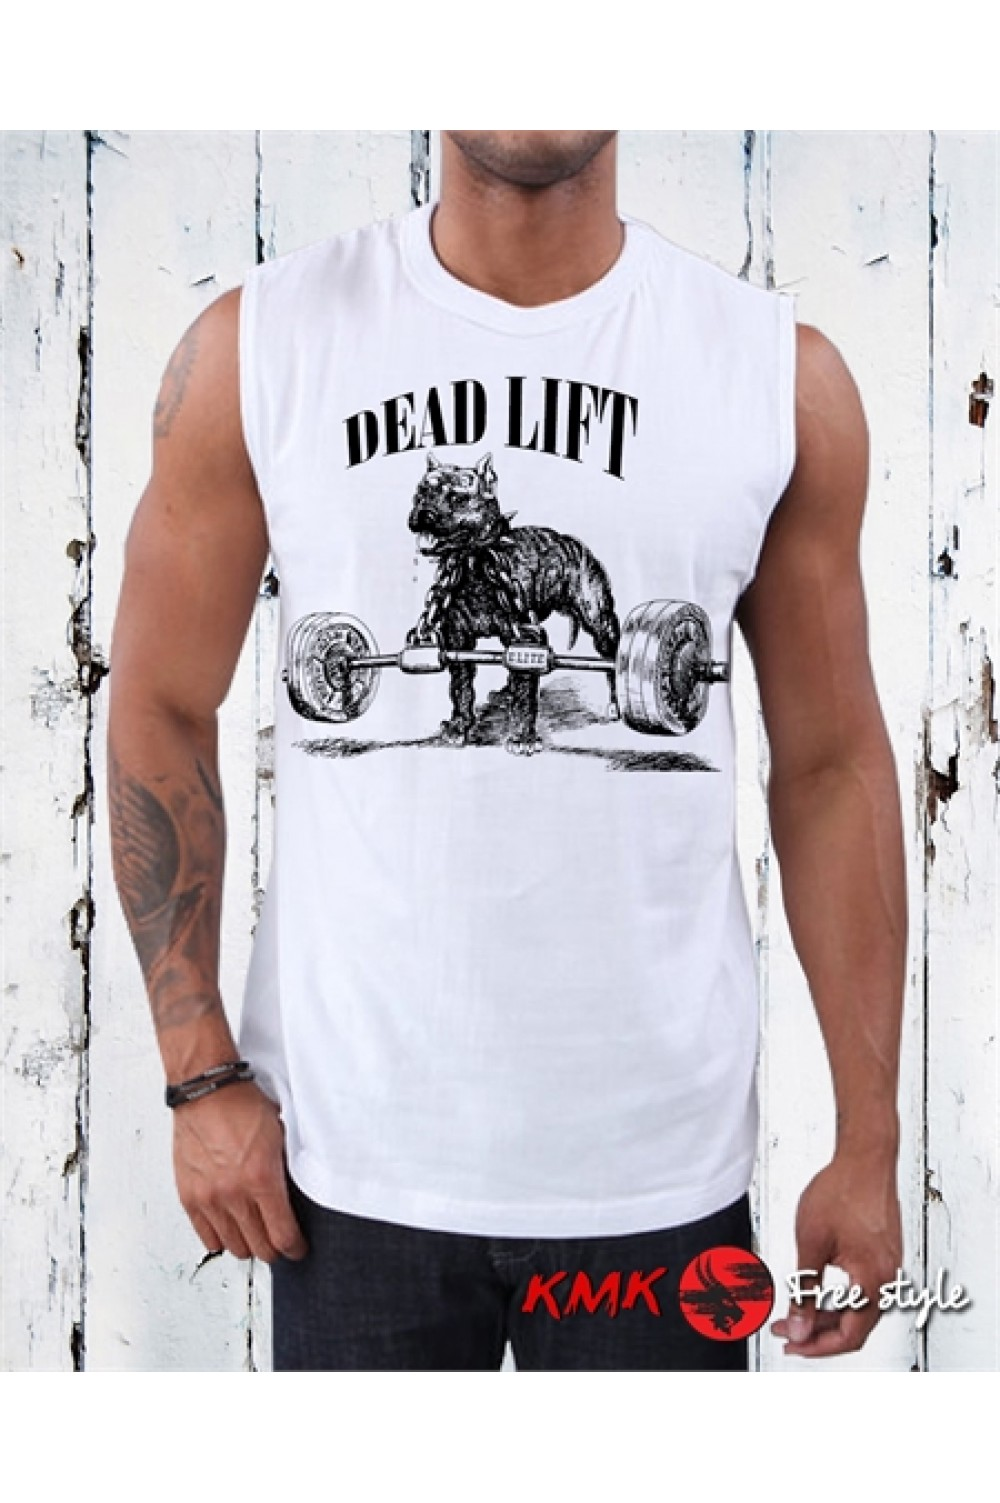 DEAD LIFT Printed T shirt | Training Tanktop | Fitness Tee | Beast Mode Shirt